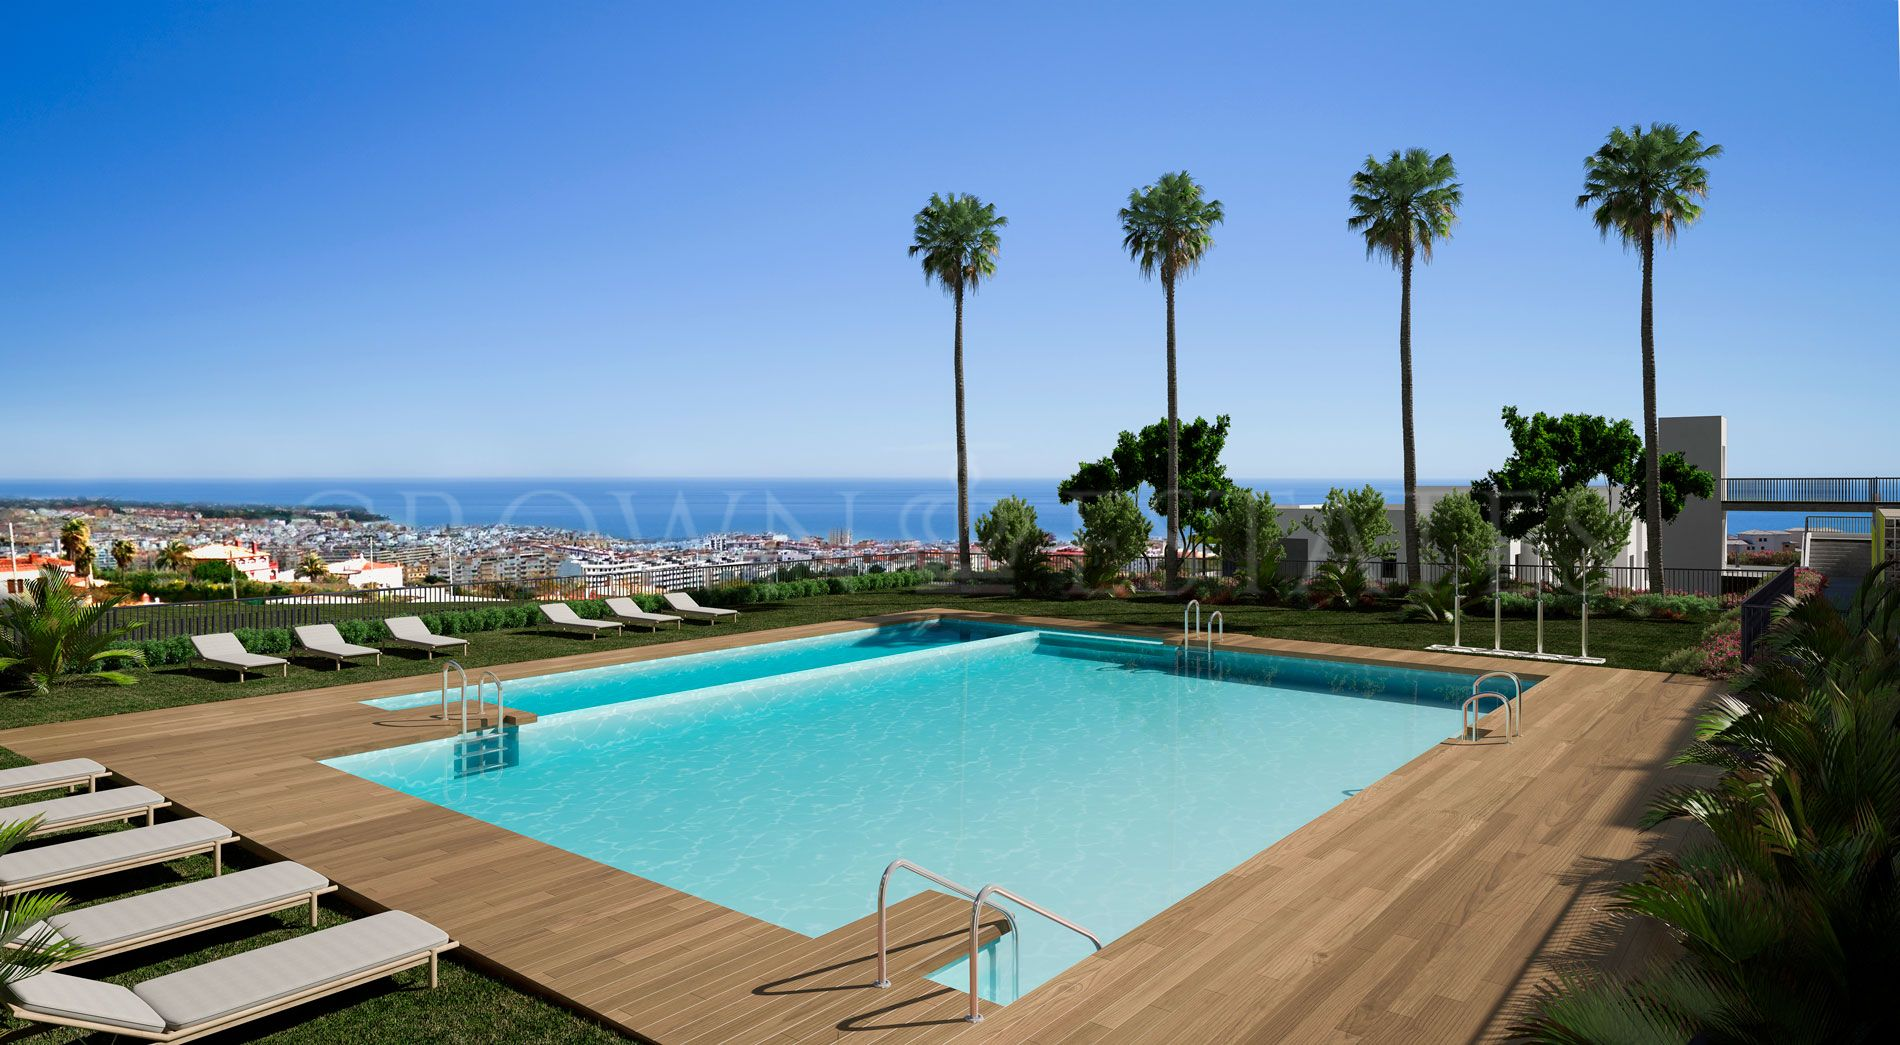 Mesas Homes offers a total of 187 one, two, three or four bedroom apartmentslocated in the city of Estepona. Its privileged location offers beautifulviews over the bay of Estepona.